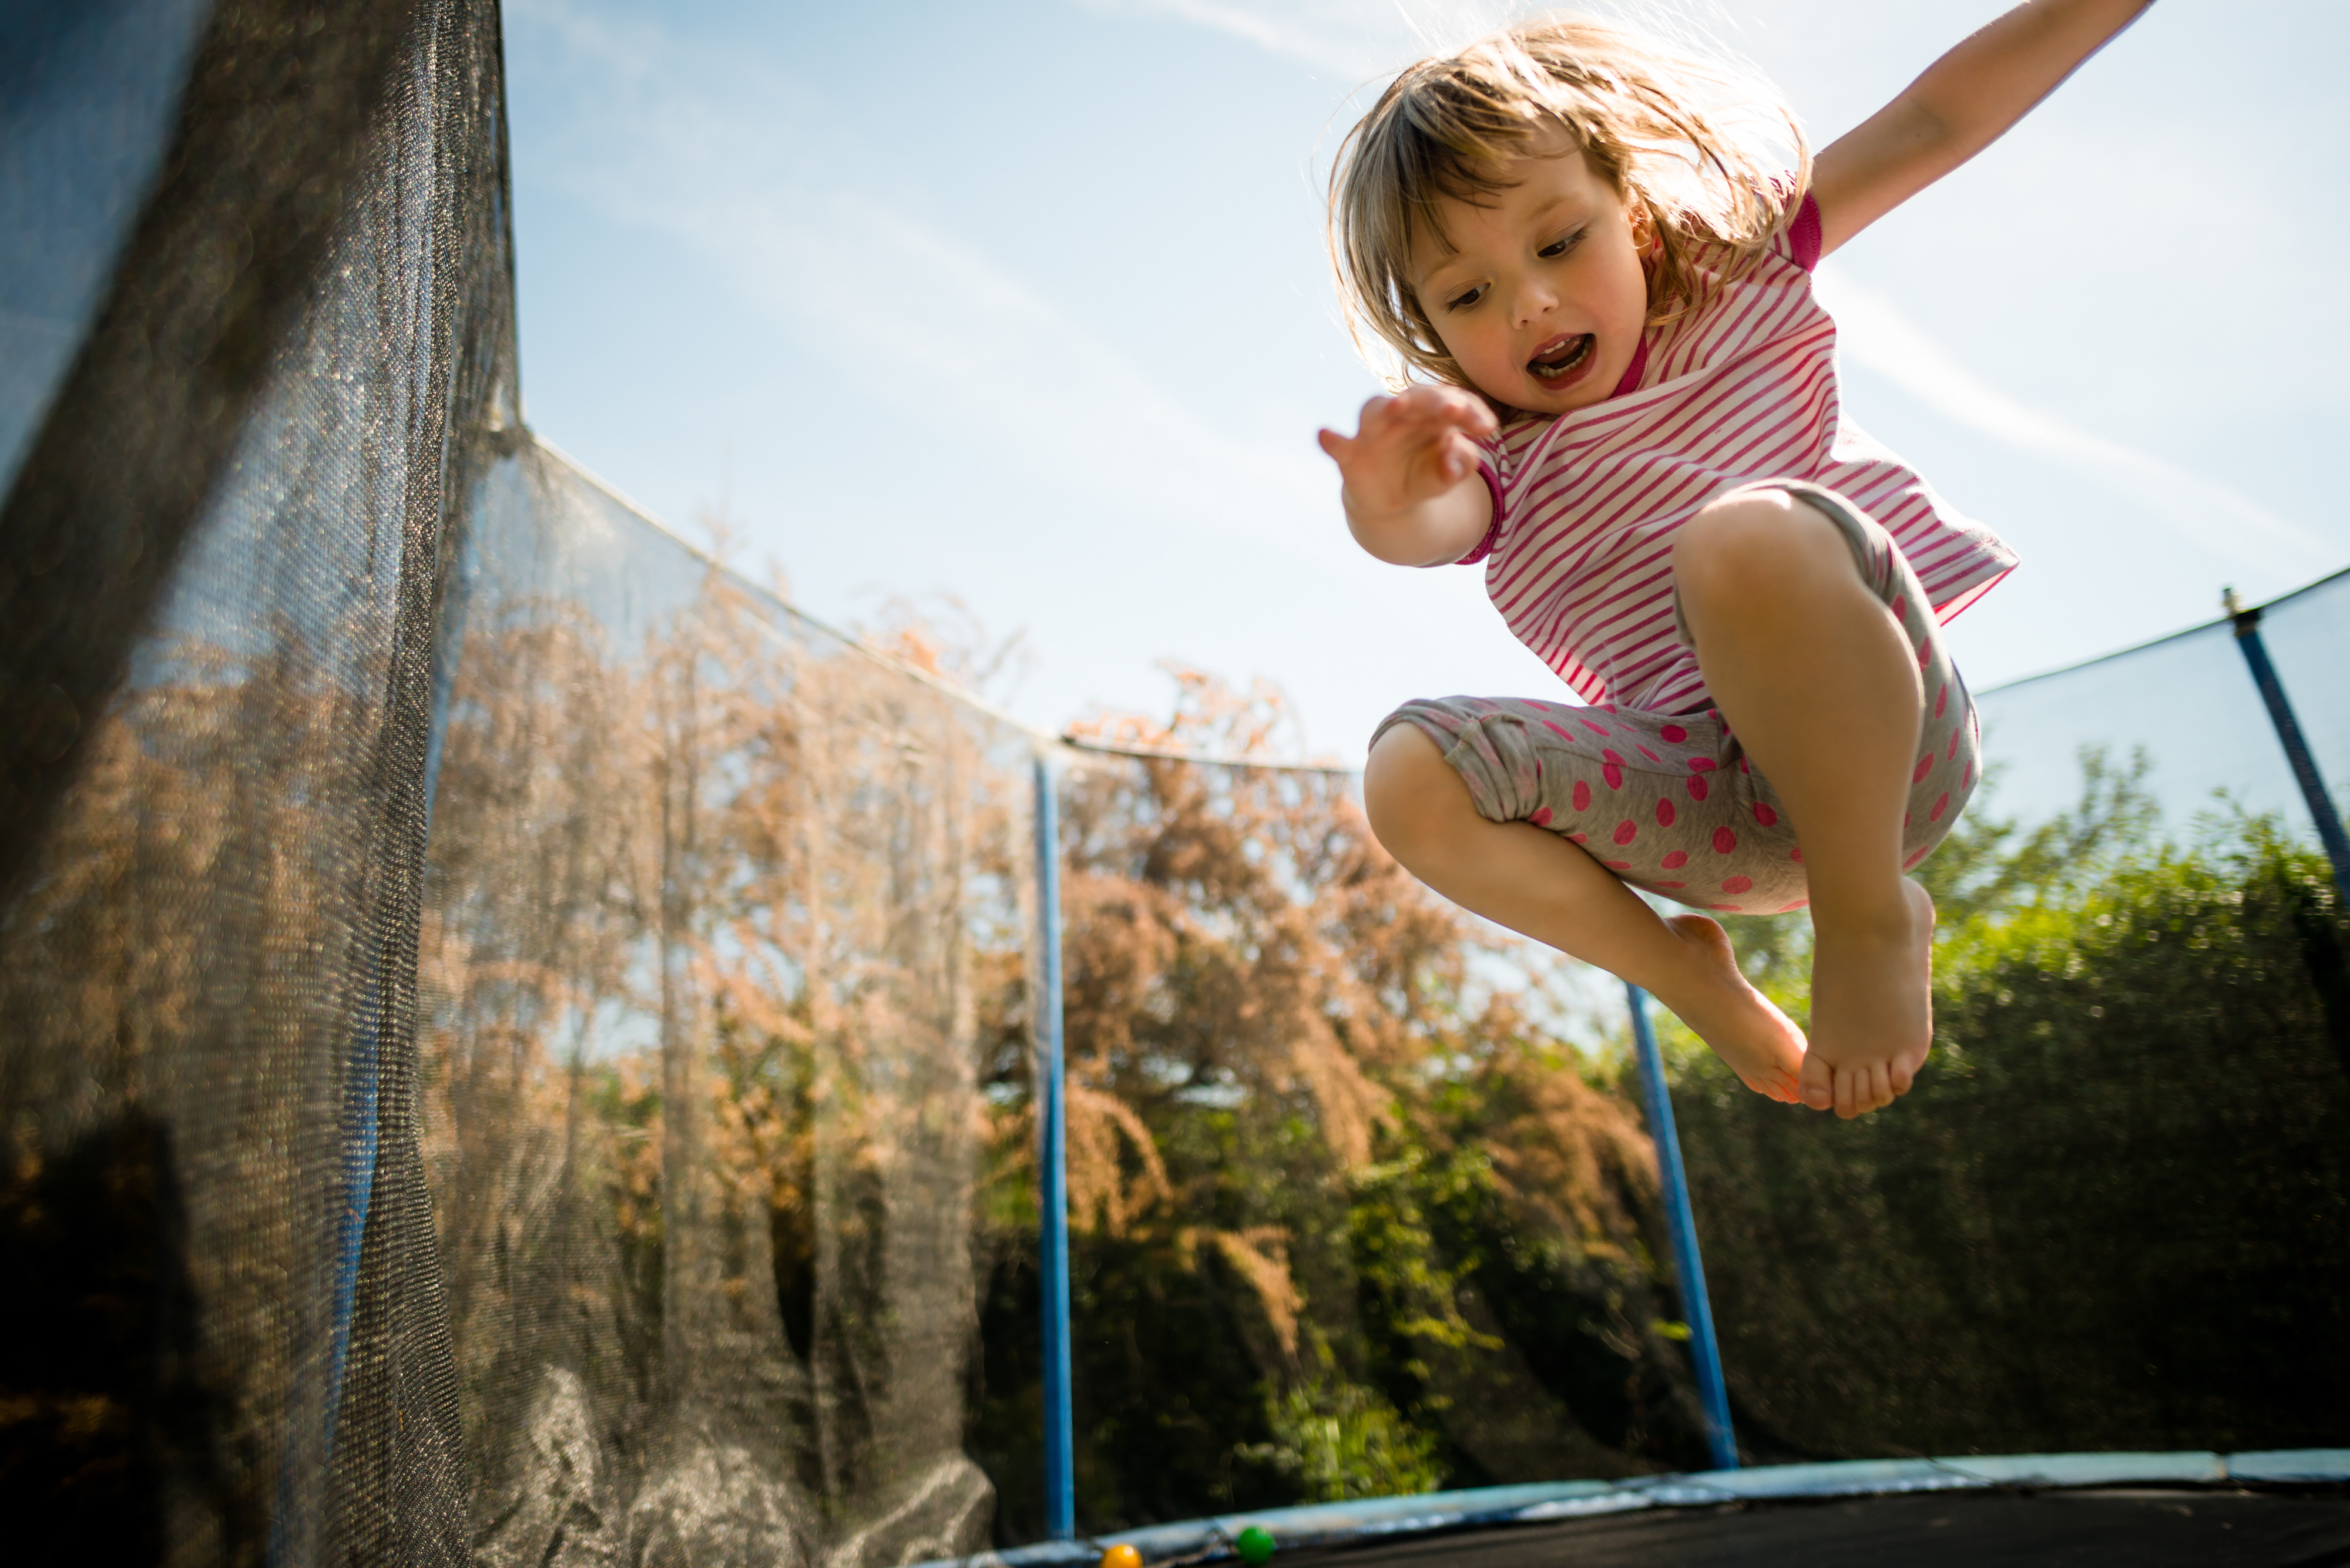 Trampoline for children – things to think about to avoid injury